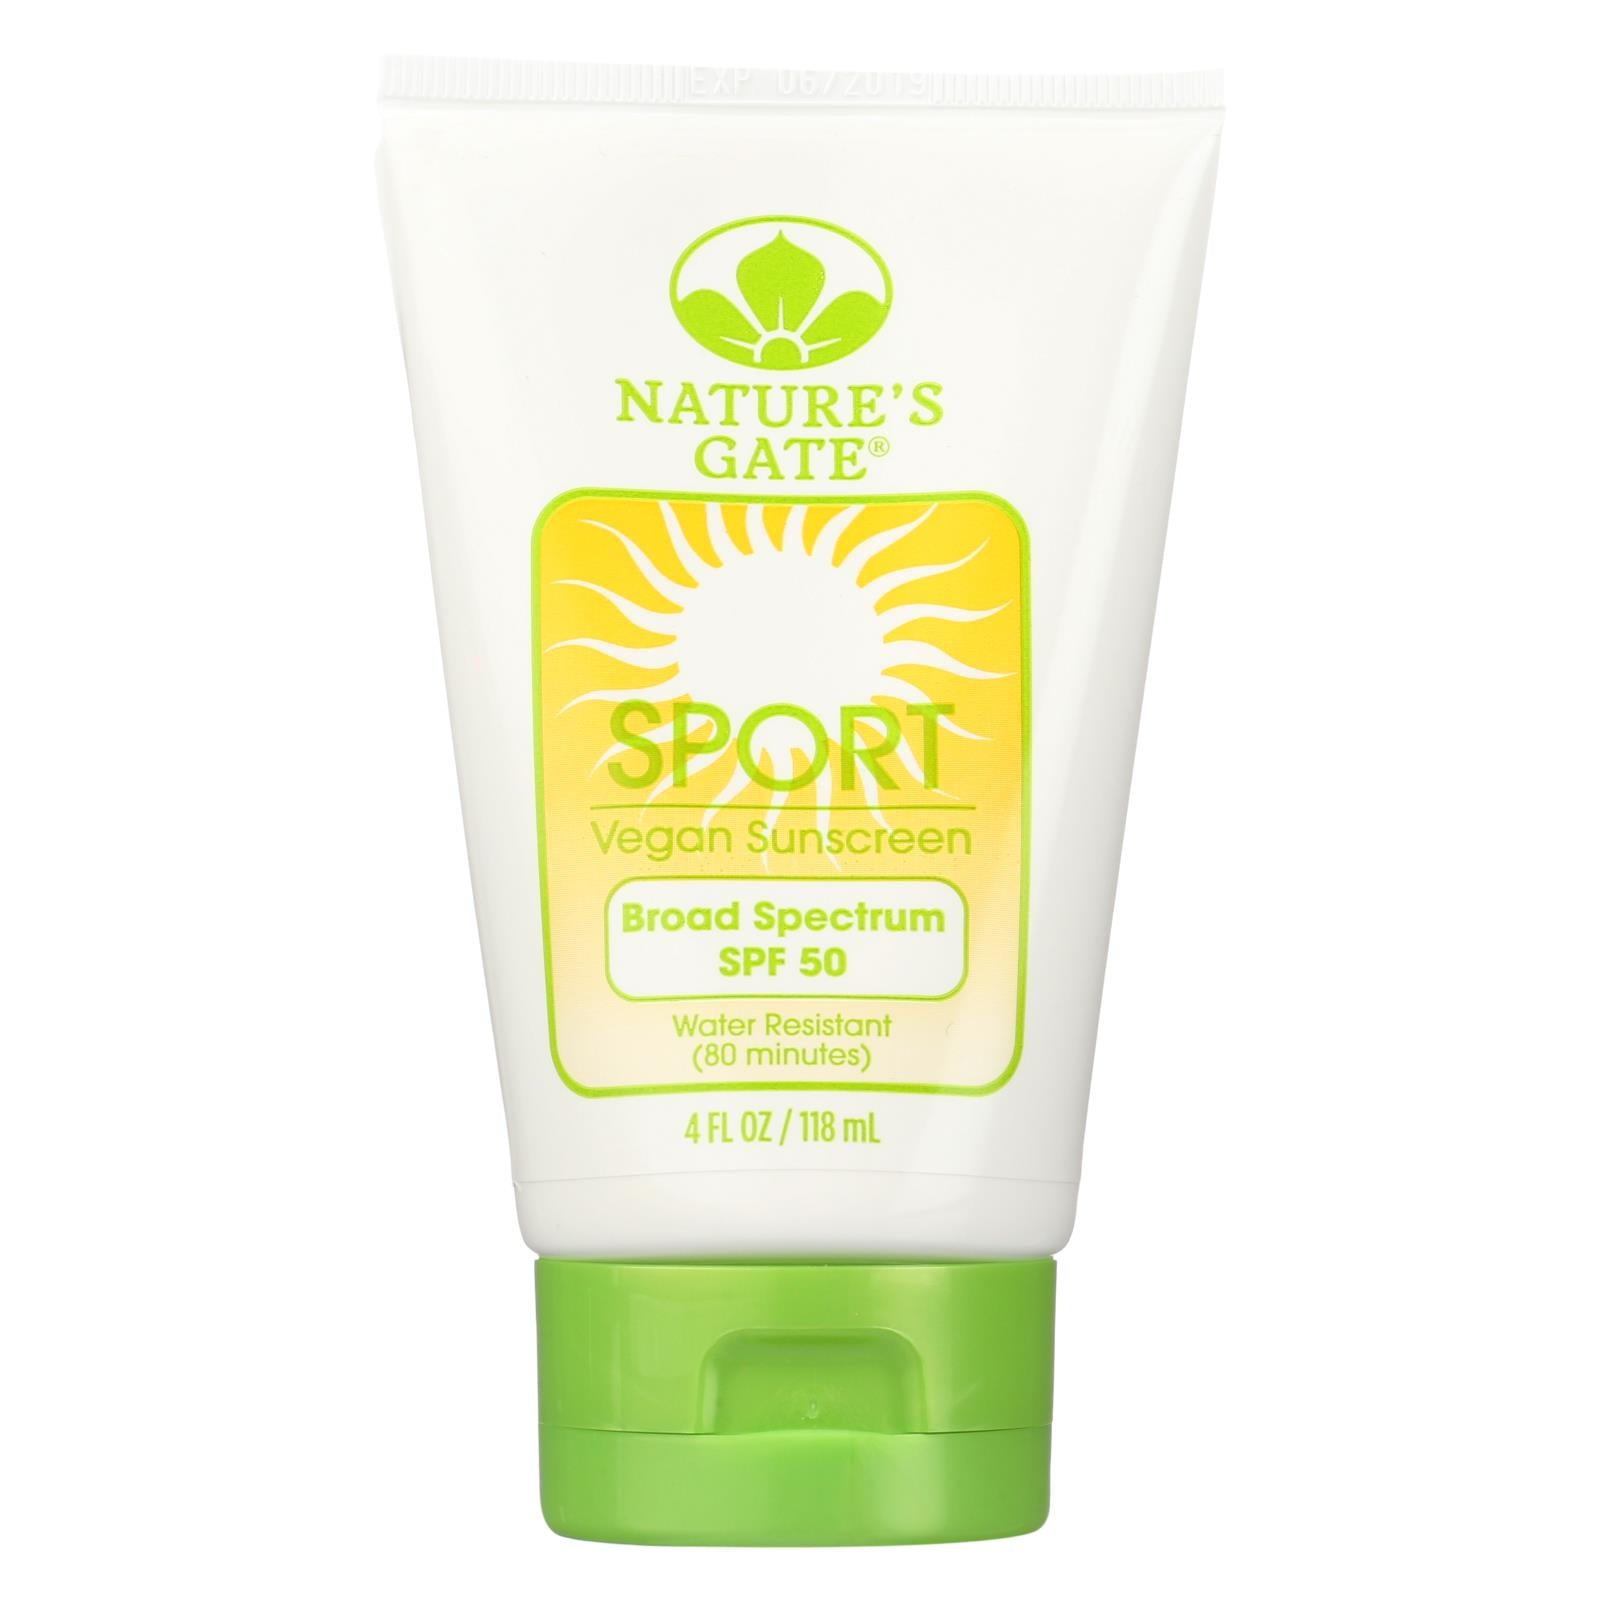 Buy Nature's Gate Sport Block Sunblock Fragrance-Free SPF 50 - 4 fl oz - Sun Care from Veroeco.com